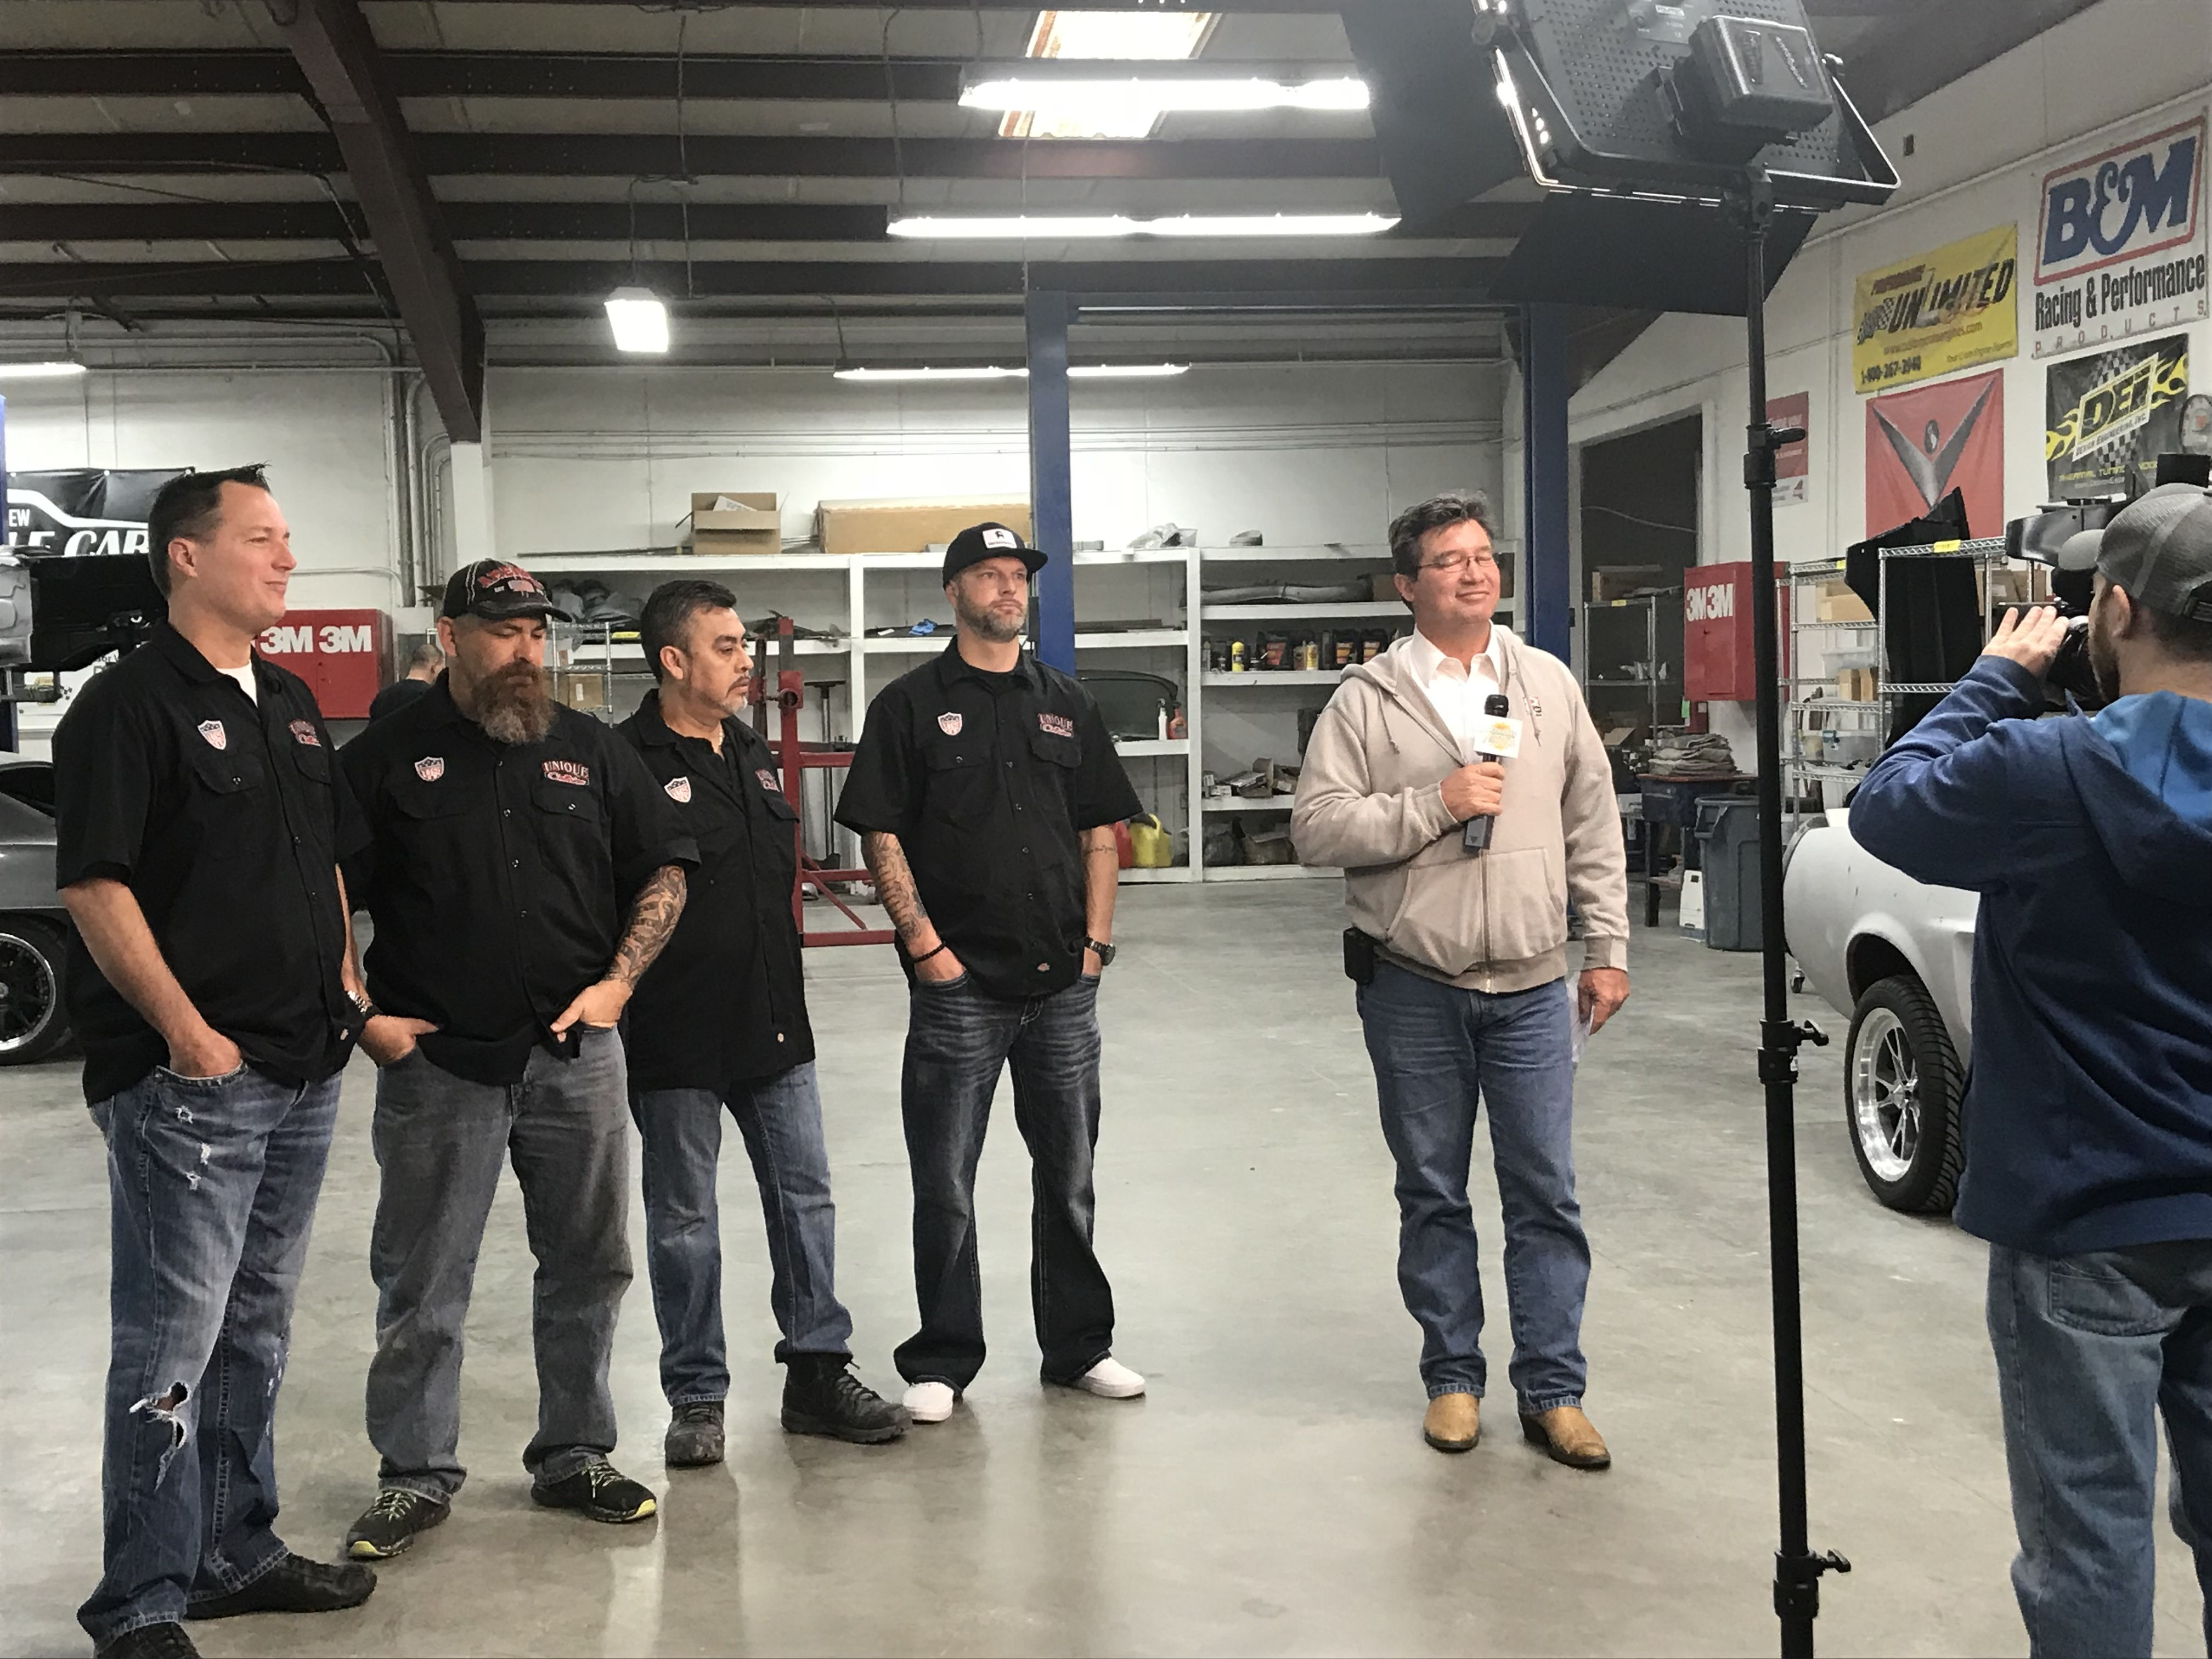 Keith Taylor and Channel 8 Morning Show broadcasting LIVE